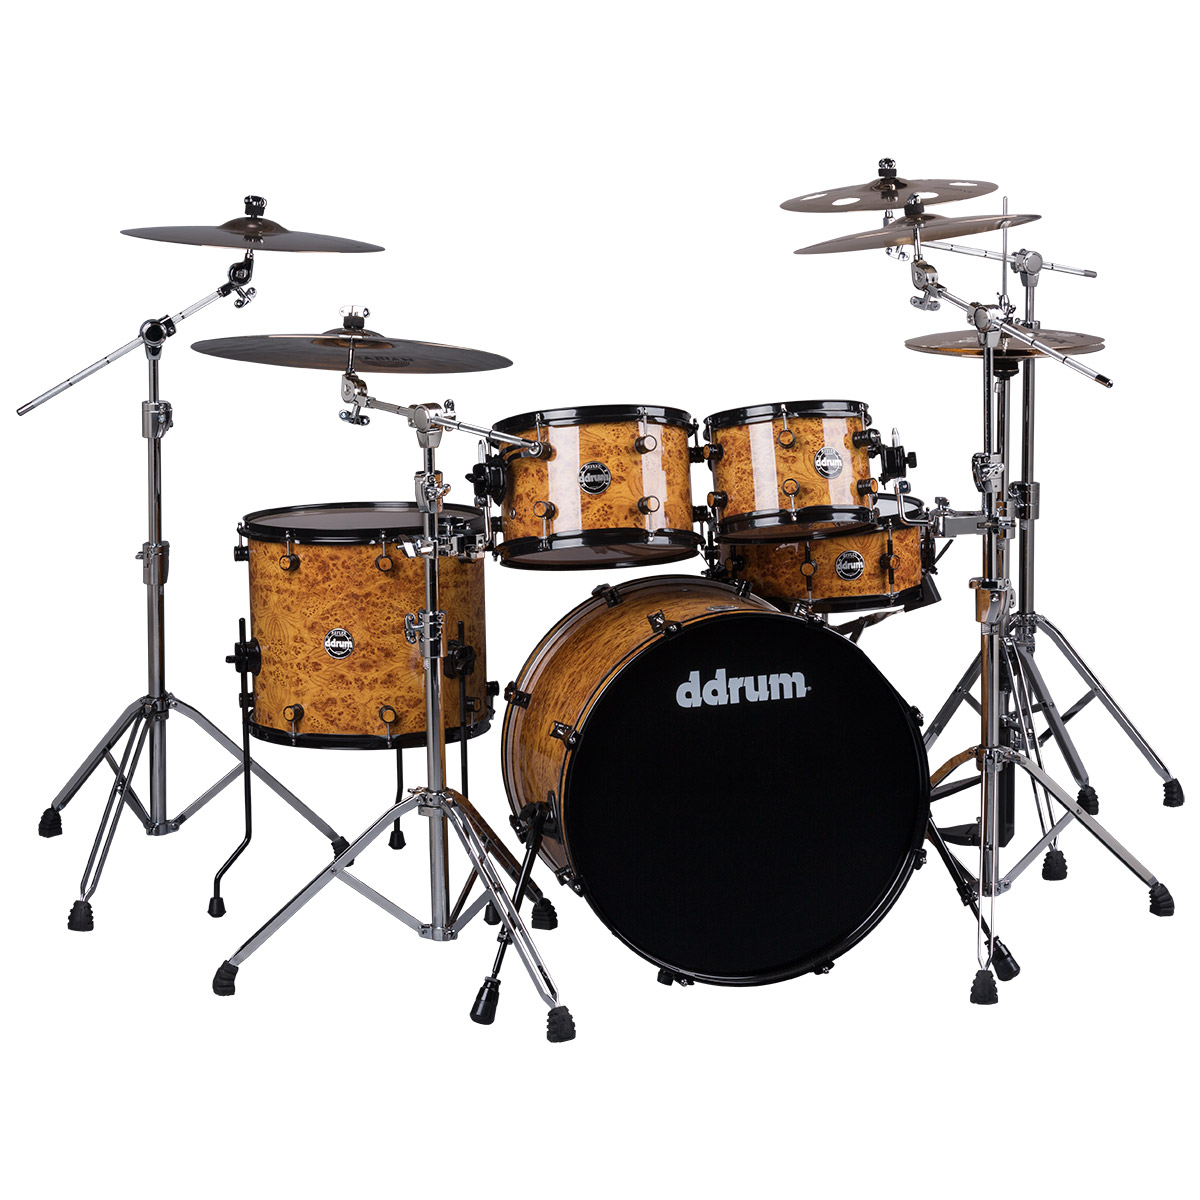 ddrum Reflex Series 5-Piece Shell Pack Mappa Burl Wrap by ddrum